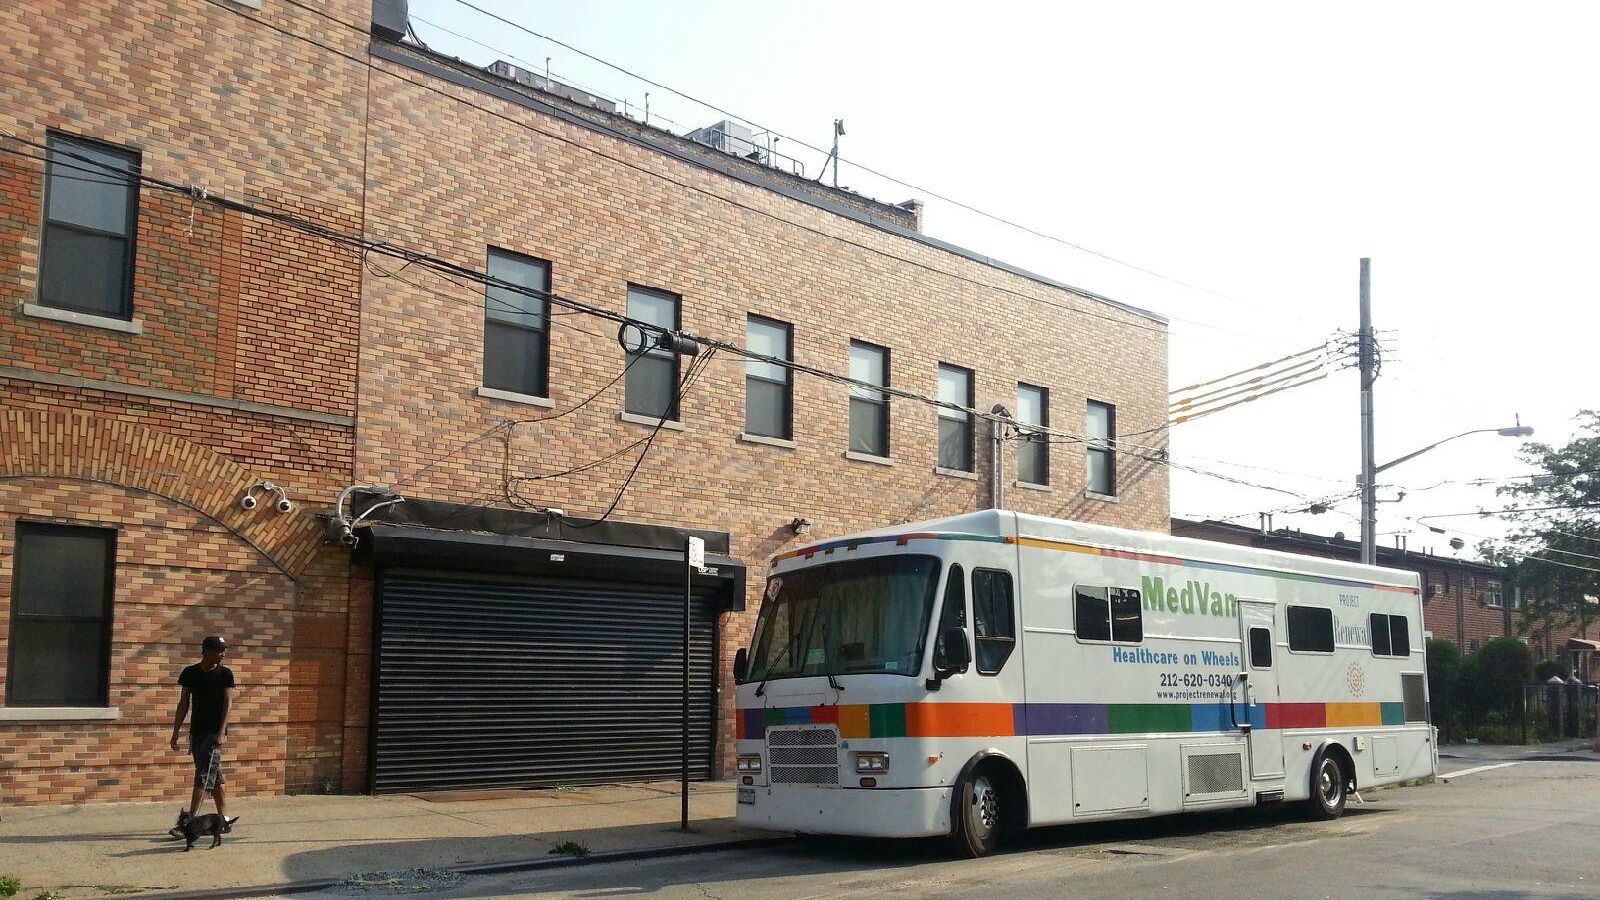 van in front of blake shelter.jpg